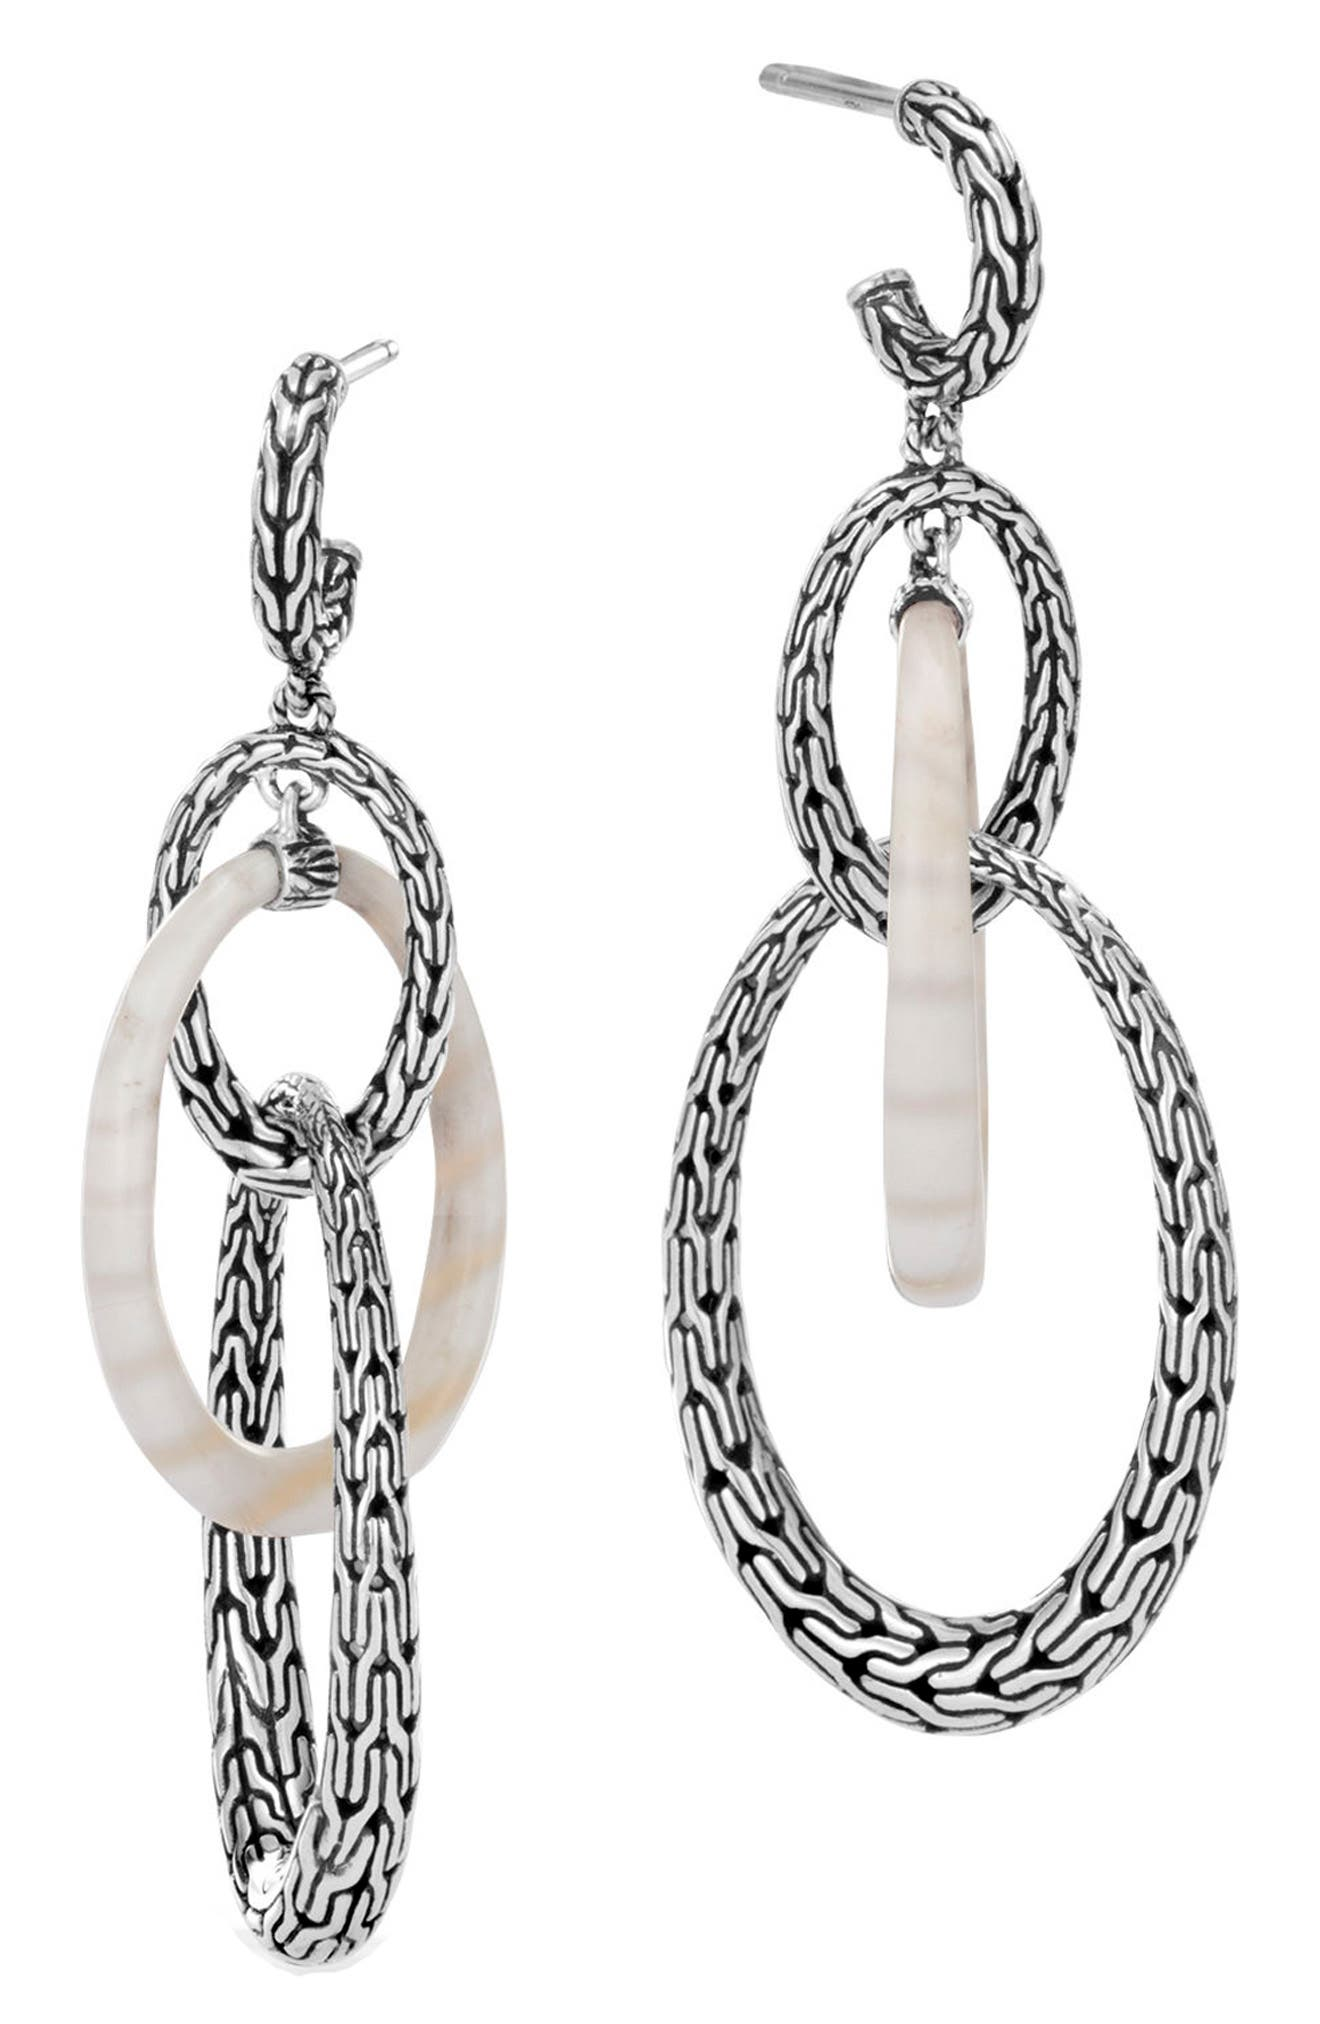 Classic Chain Silver White Agate Drop Earrings,                             Main thumbnail 1, color,                             WHITE AGATE/ SILVER